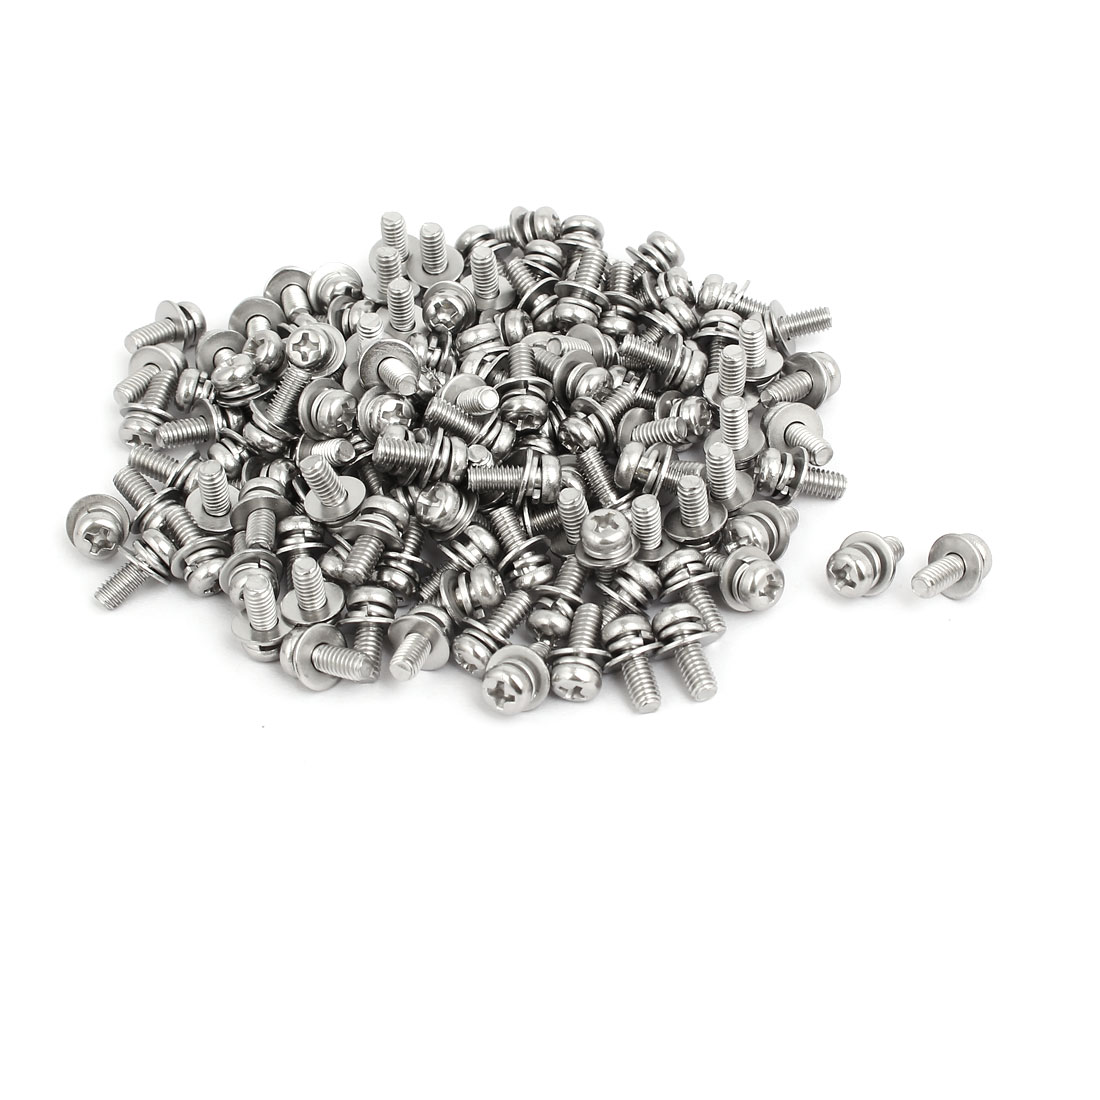 M4x10mm 304 Stainless Steel Phillips Pan Head Bolt Screw w Washer 150 Sets